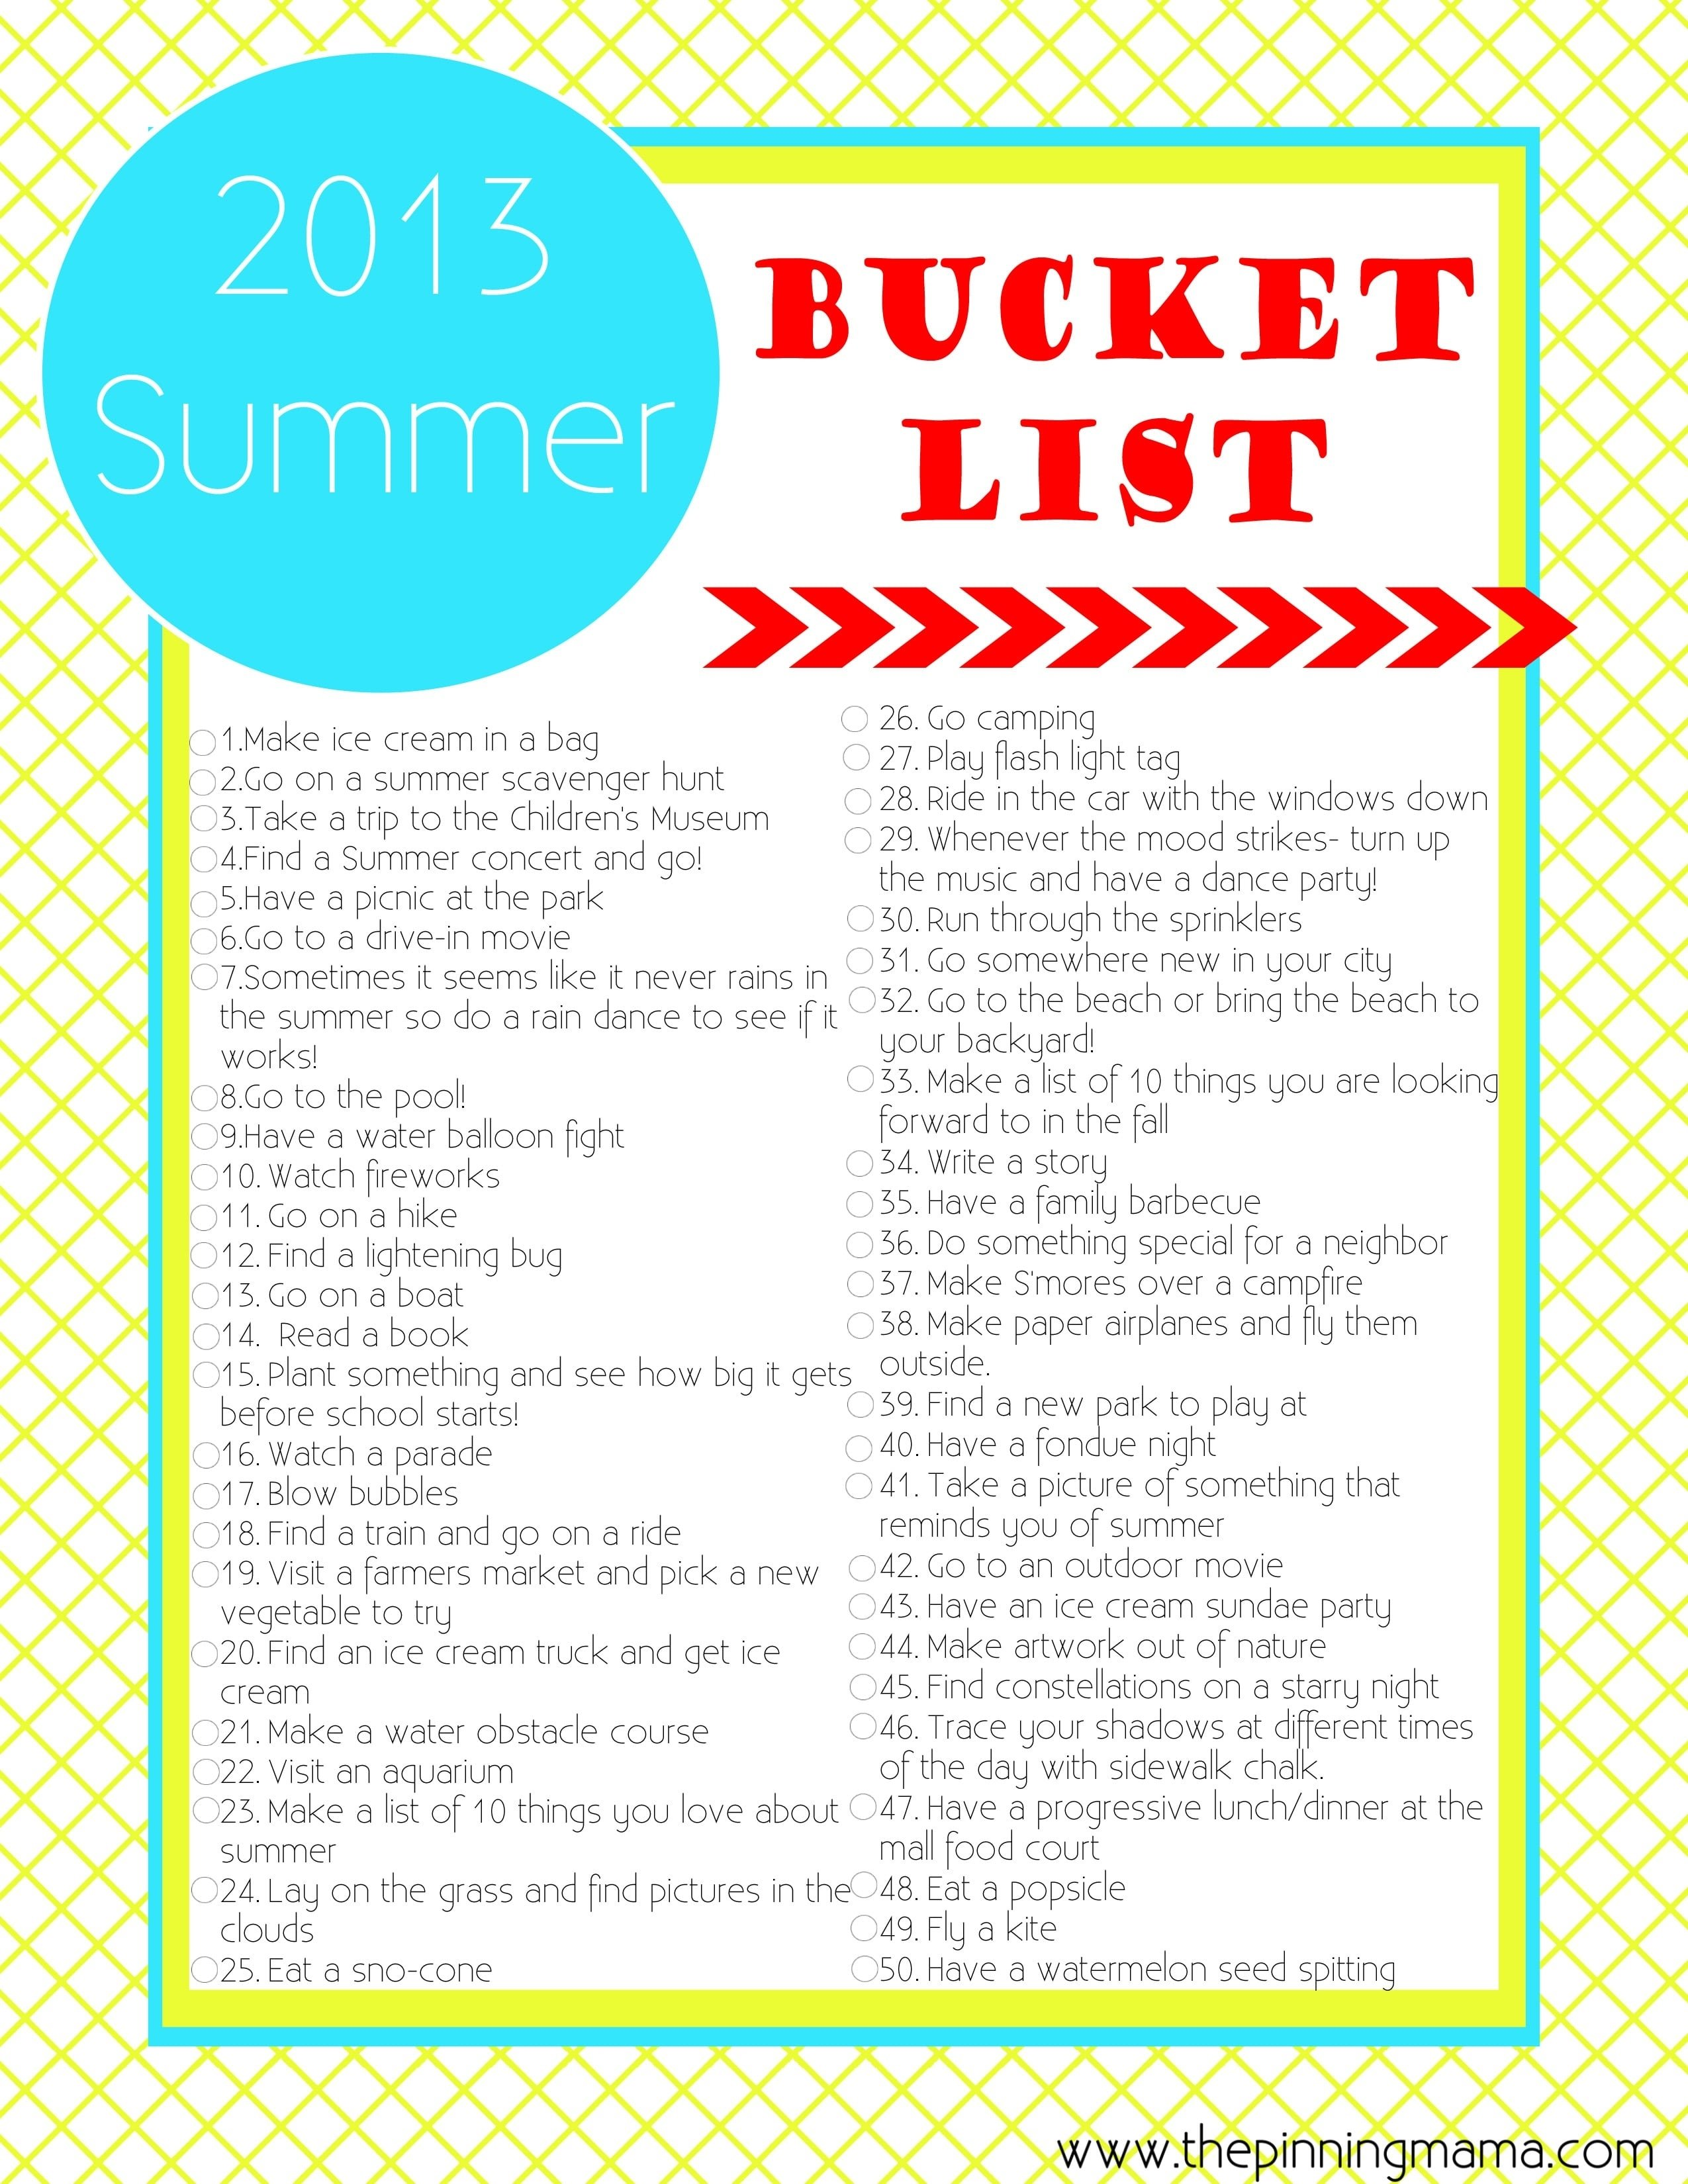 10 Amazing Summer Bucket List Ideas For Couples summer bucket list 50 summer ideas and activities for kids with 1 2020